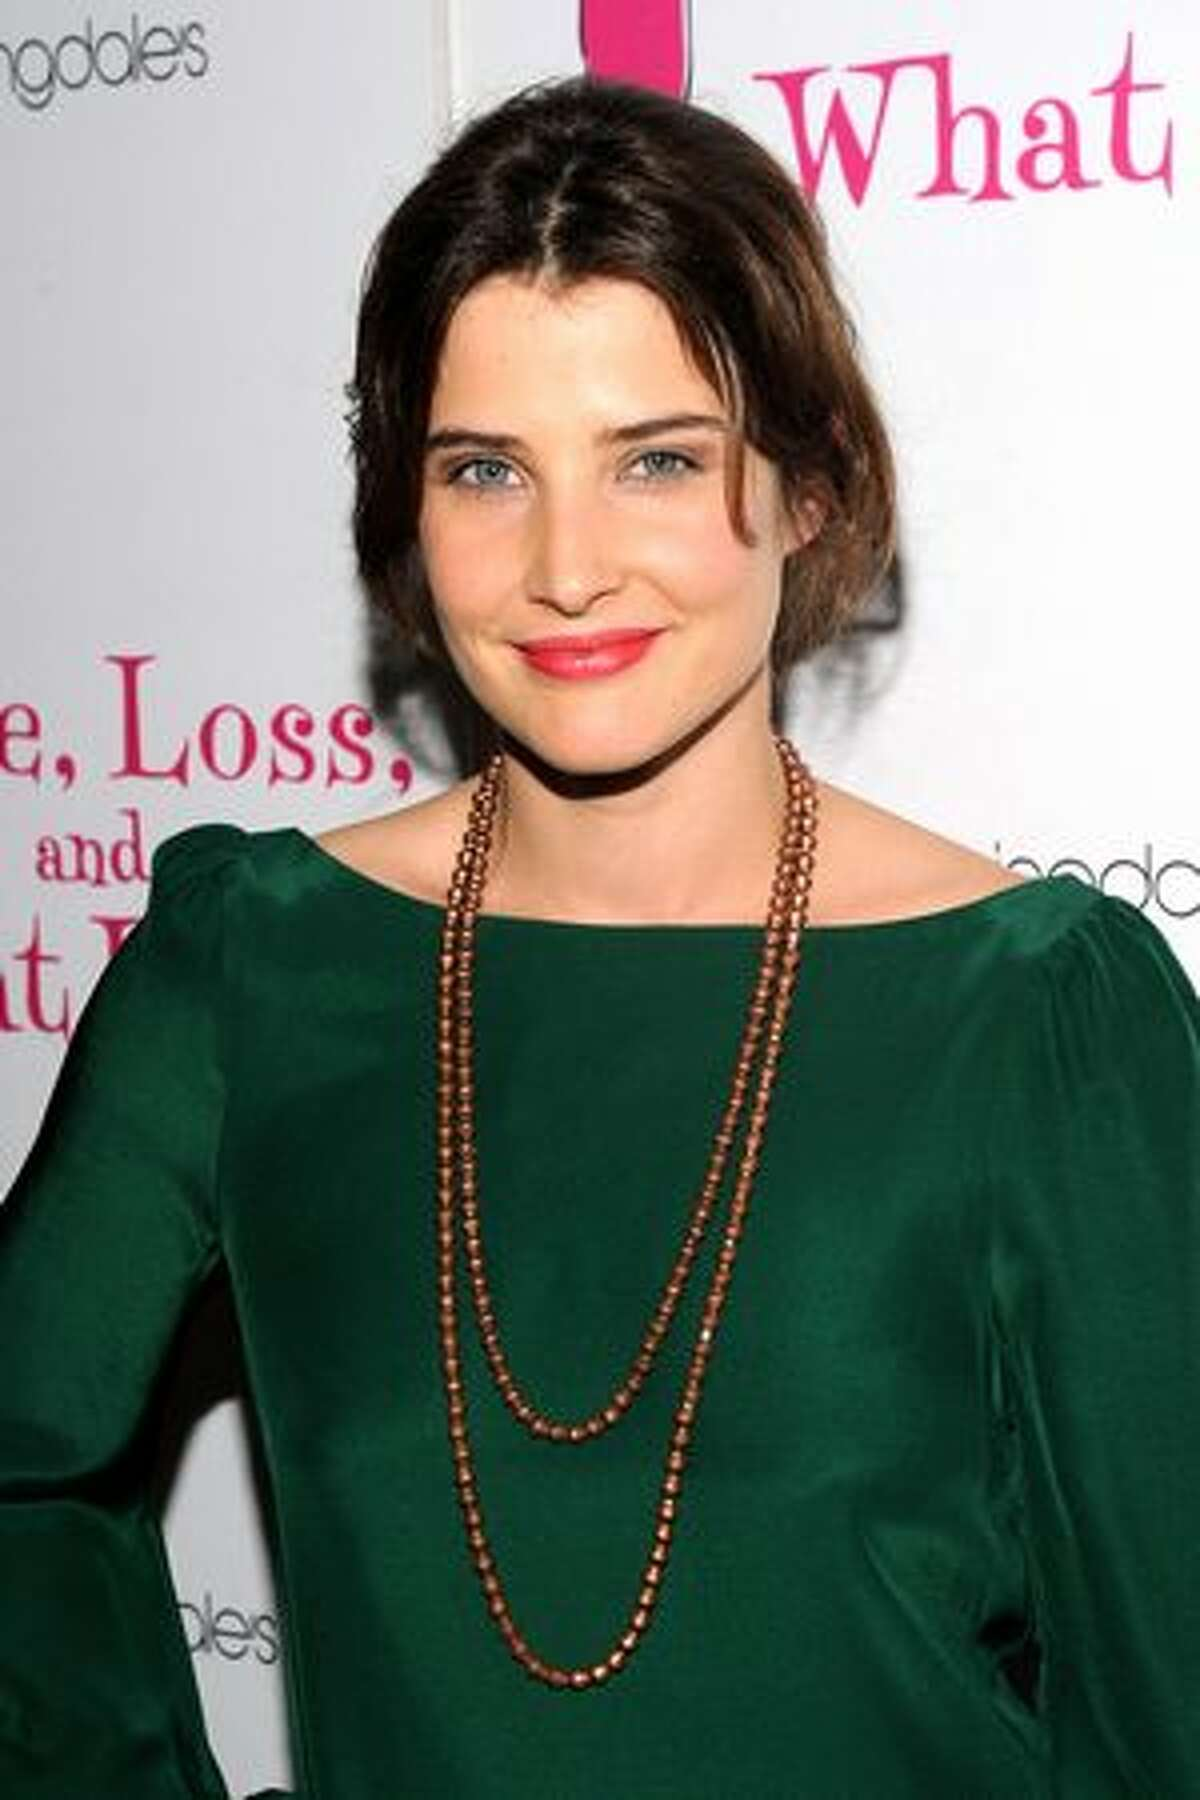 Cobie Smulders , 28. Vancouver, B.C. native who's a regular on CBS'